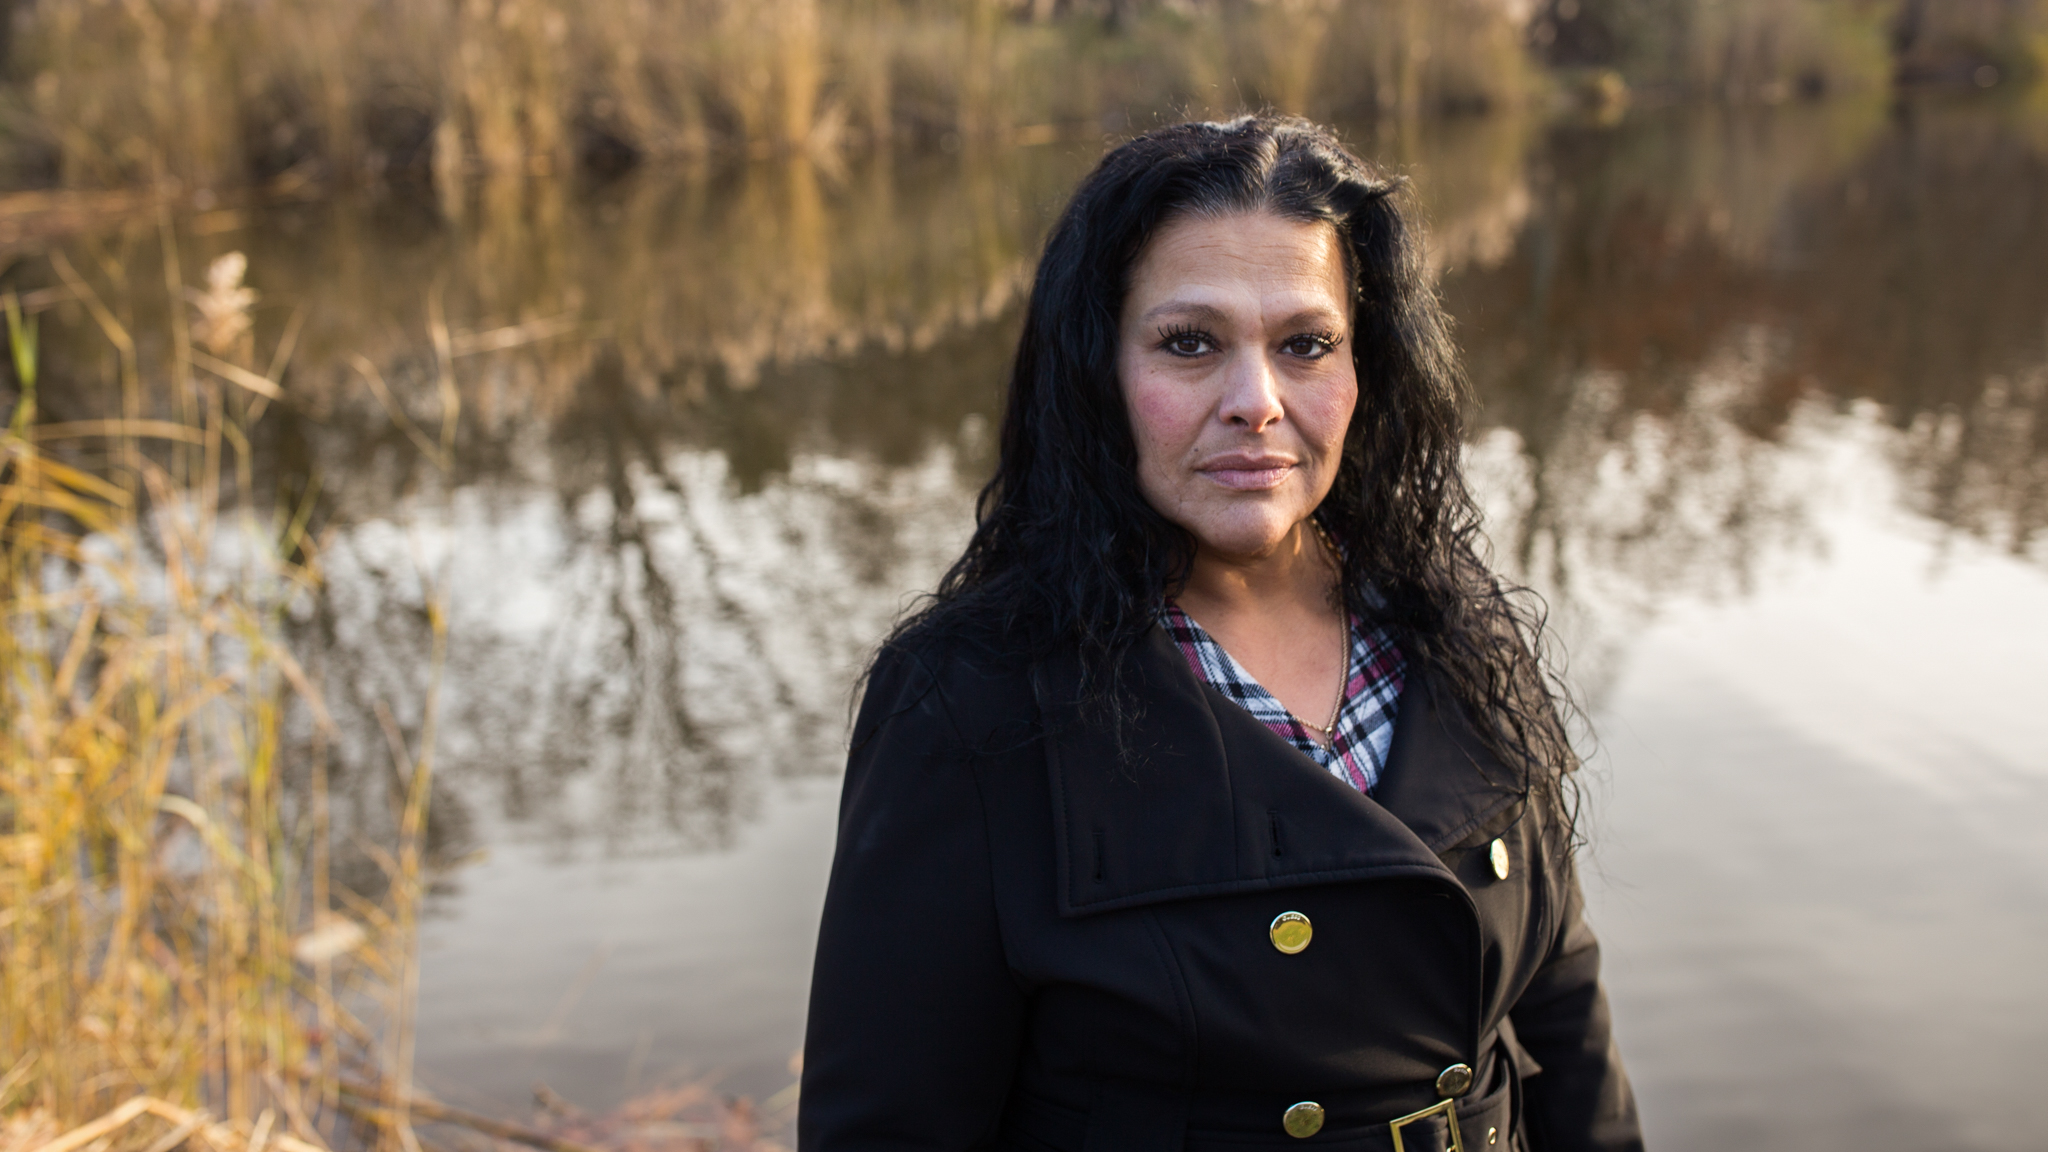 Kim Dadou killed her abusive boyfriend before he could kill her. Then she served 17 years in jail, and now she's taking on the system. Read more: http://narrative.ly/she-killed-her-abuser-before-he-could-kill-her-then-served-17-years-now-shes-taking-on-the-system/